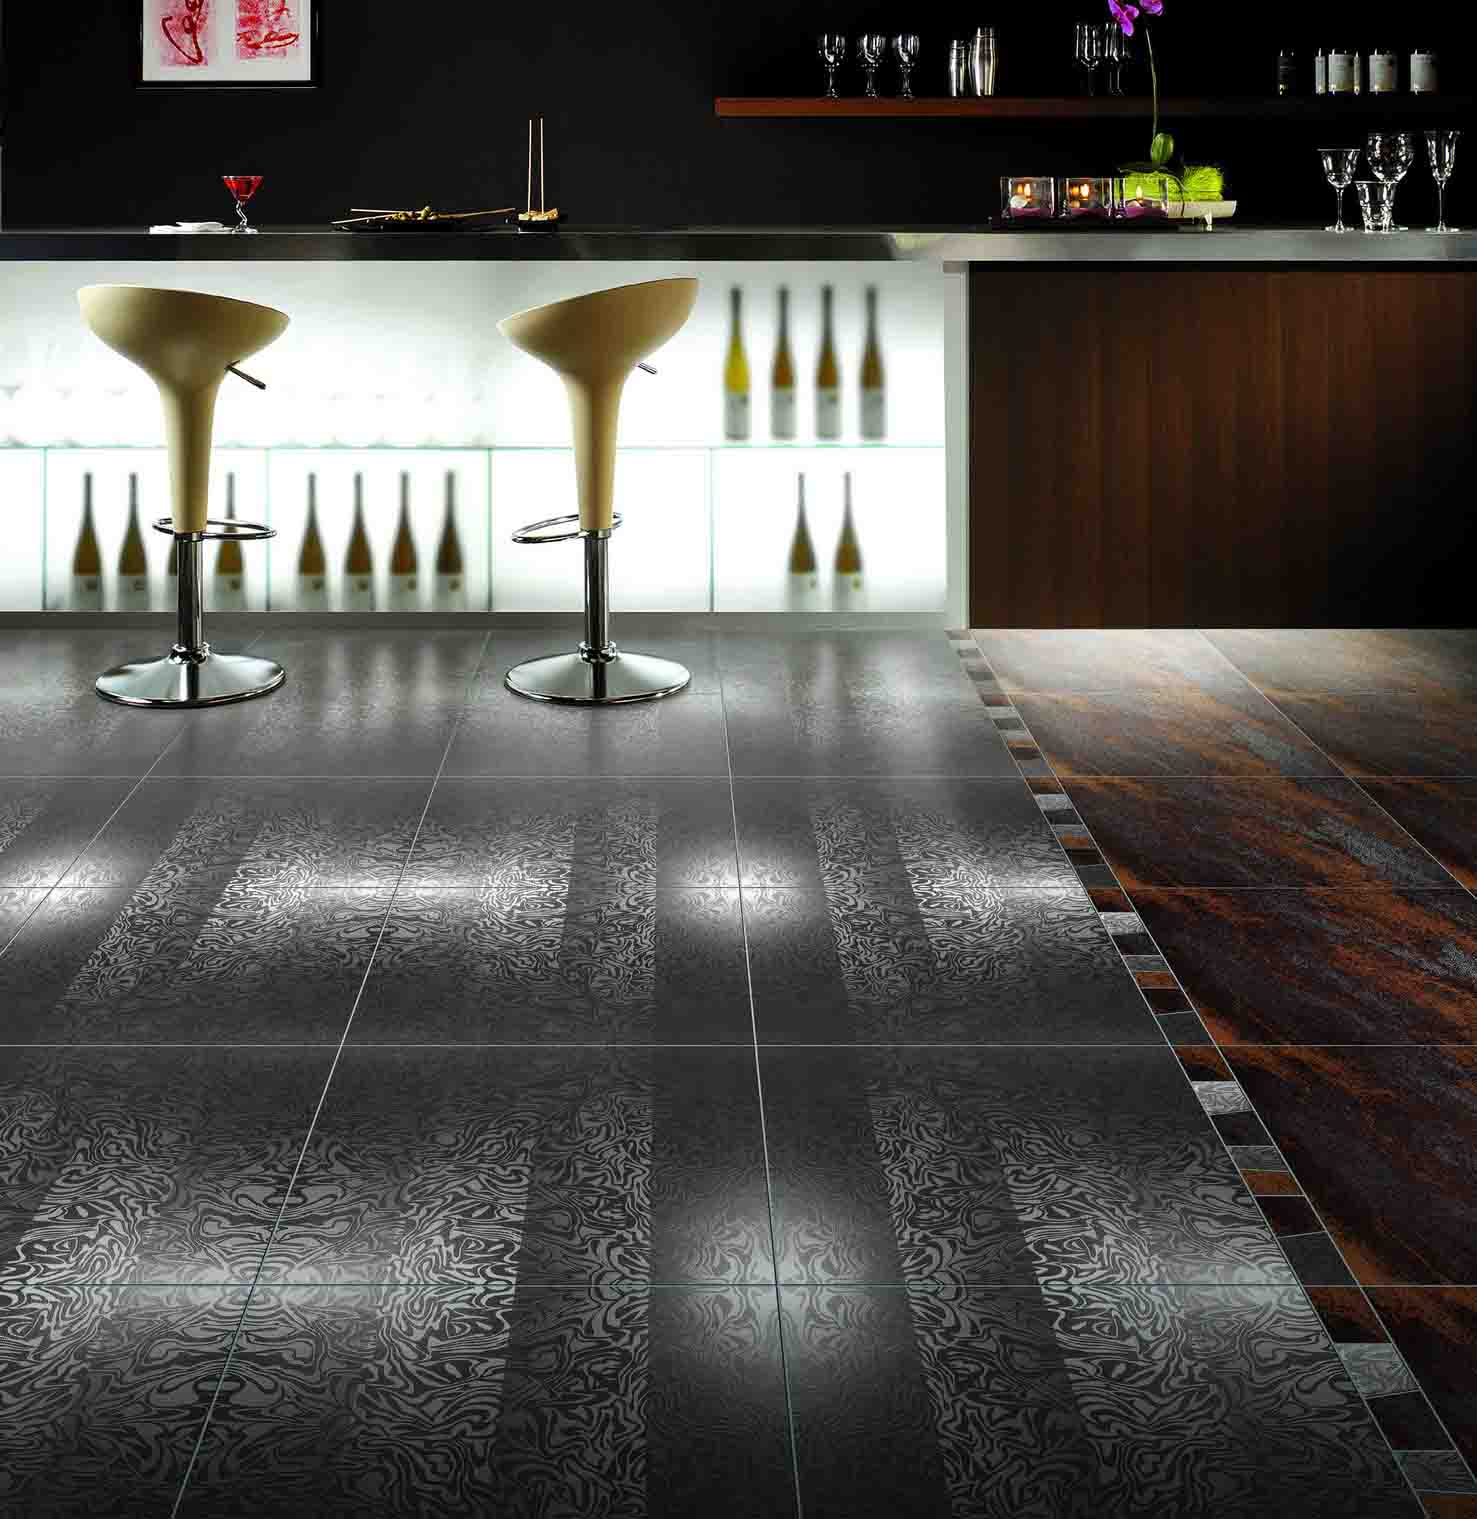 Global trends global trends is offering 25 discount on metallic global trends is offering 25 discount on metallic porcelain floor tiles dailygadgetfo Choice Image